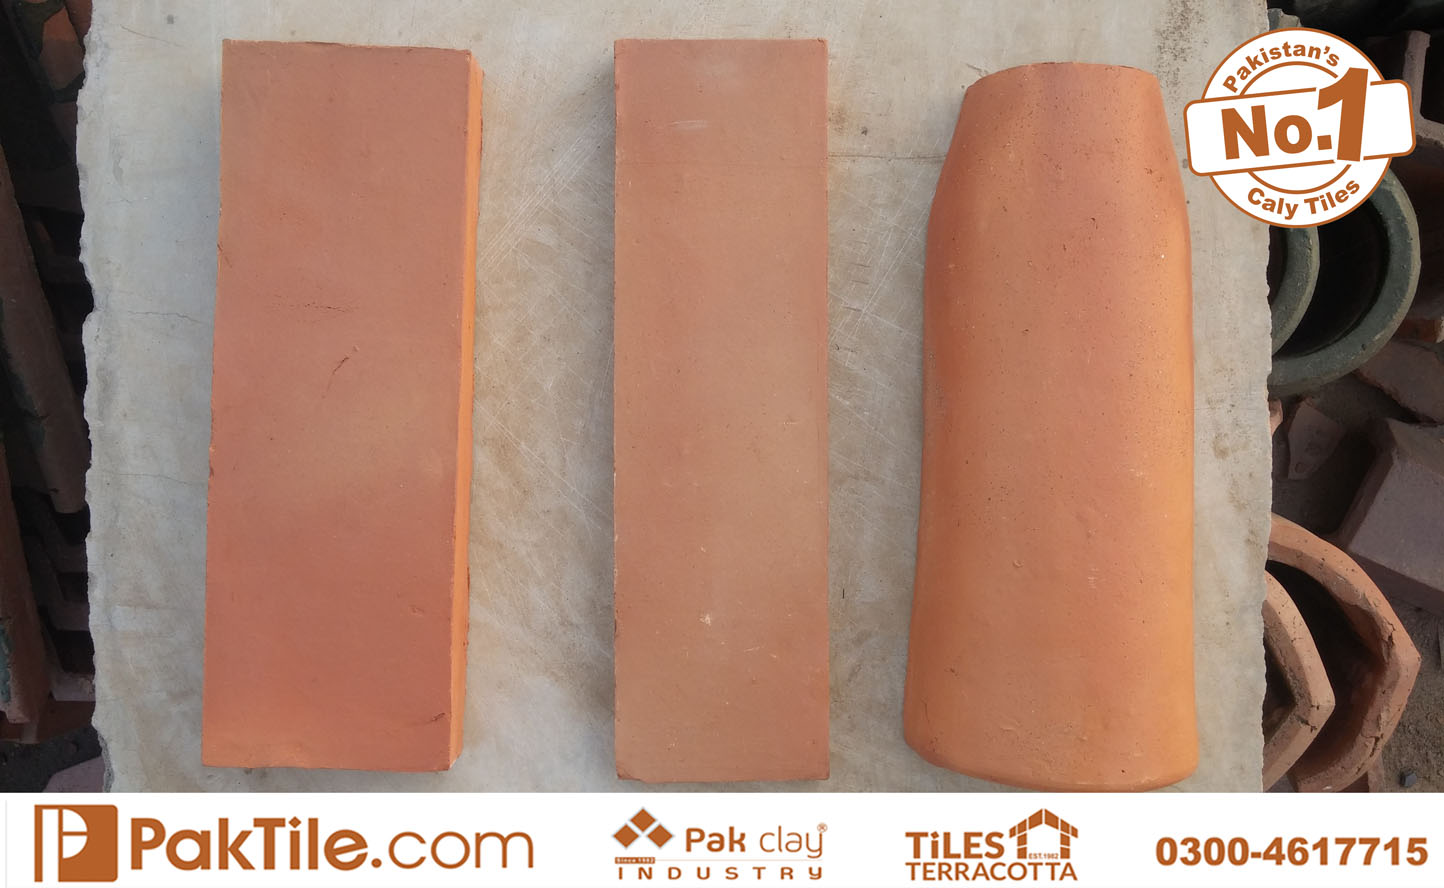 Terracotta Tiles Design Gas Bricks Tiles Prices in Pakistan Images